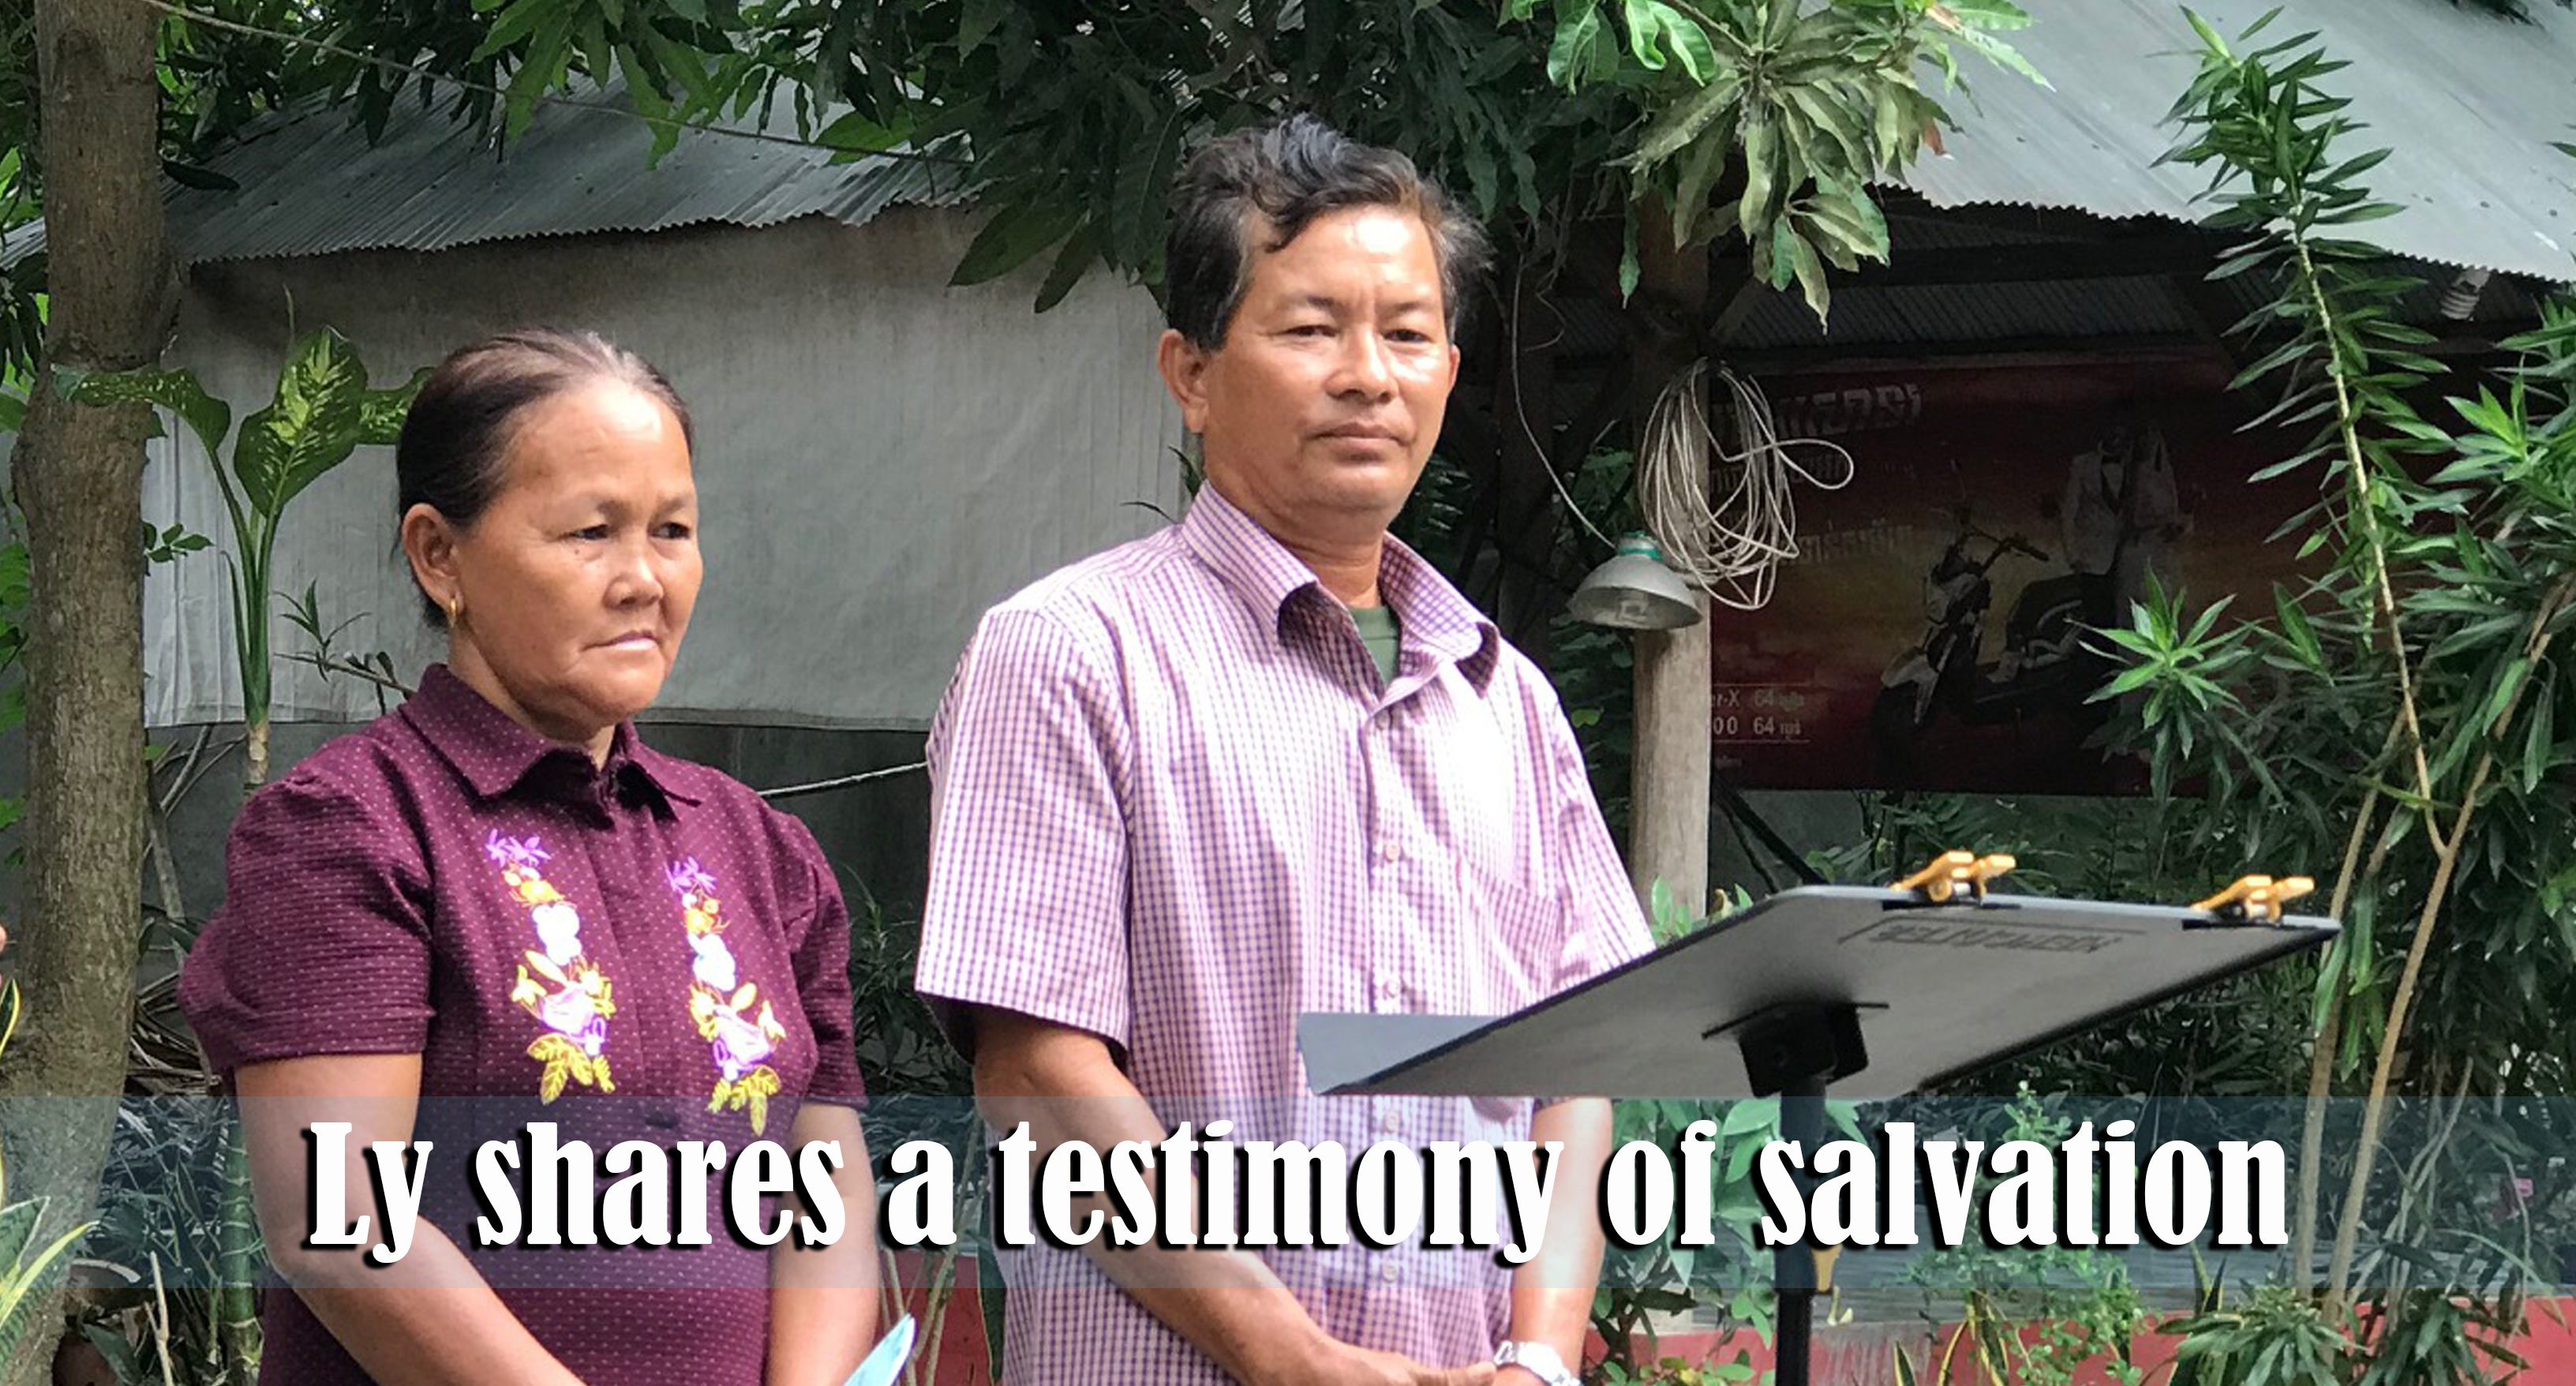 7.23.19 Ly shares salvation testimony